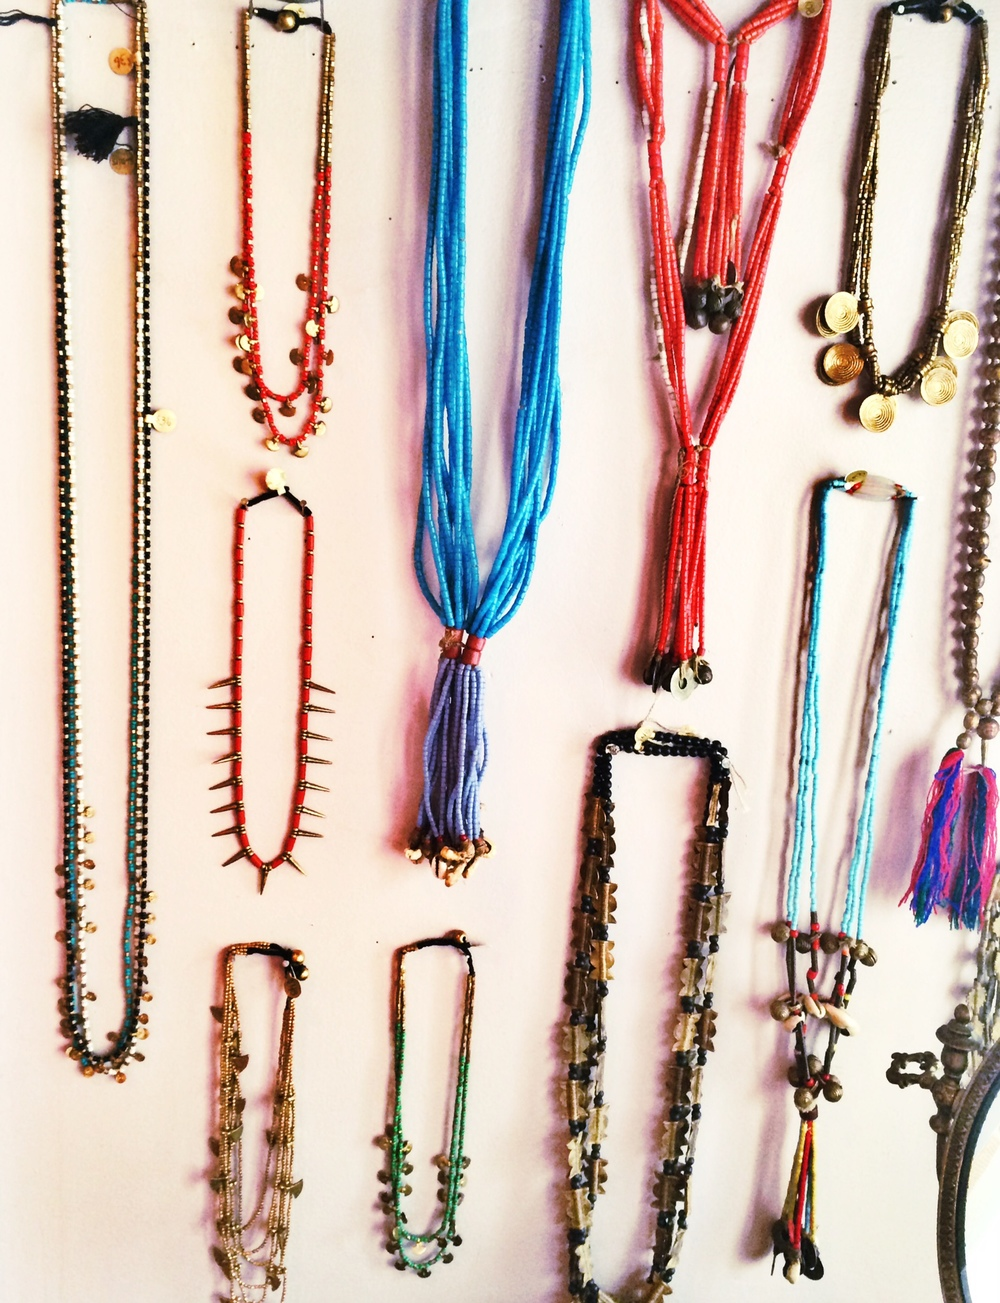 Raquel Greer Gordian discusses how Charm School Vintage offers a unique selection of pieces for your SXSW wardrobe.